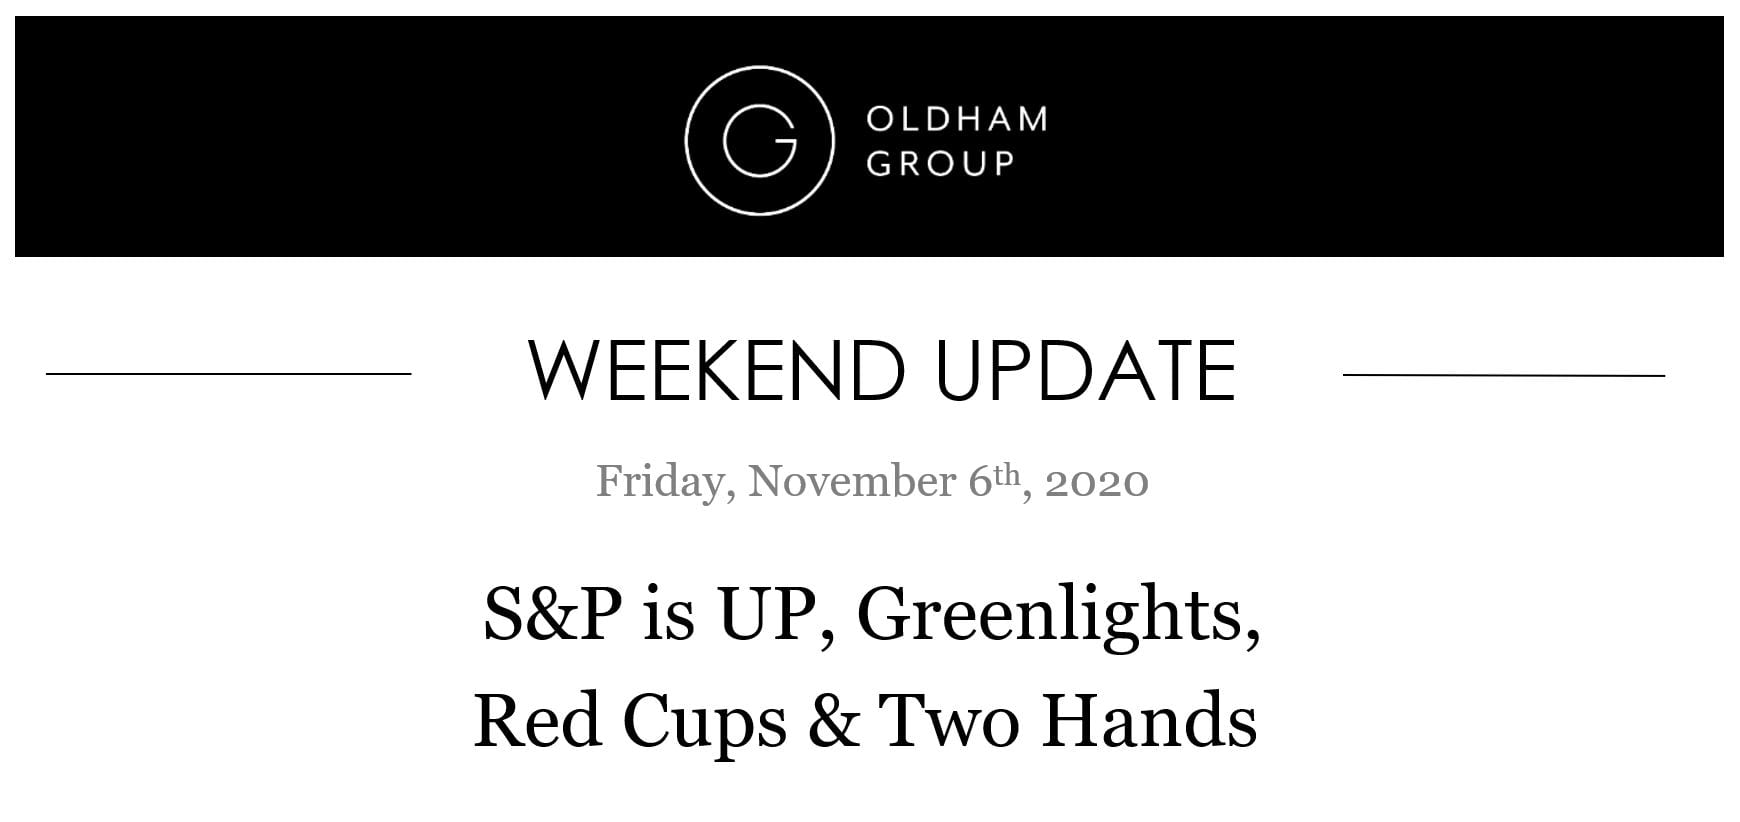 The Oldham Group   Updates November 9, 2020